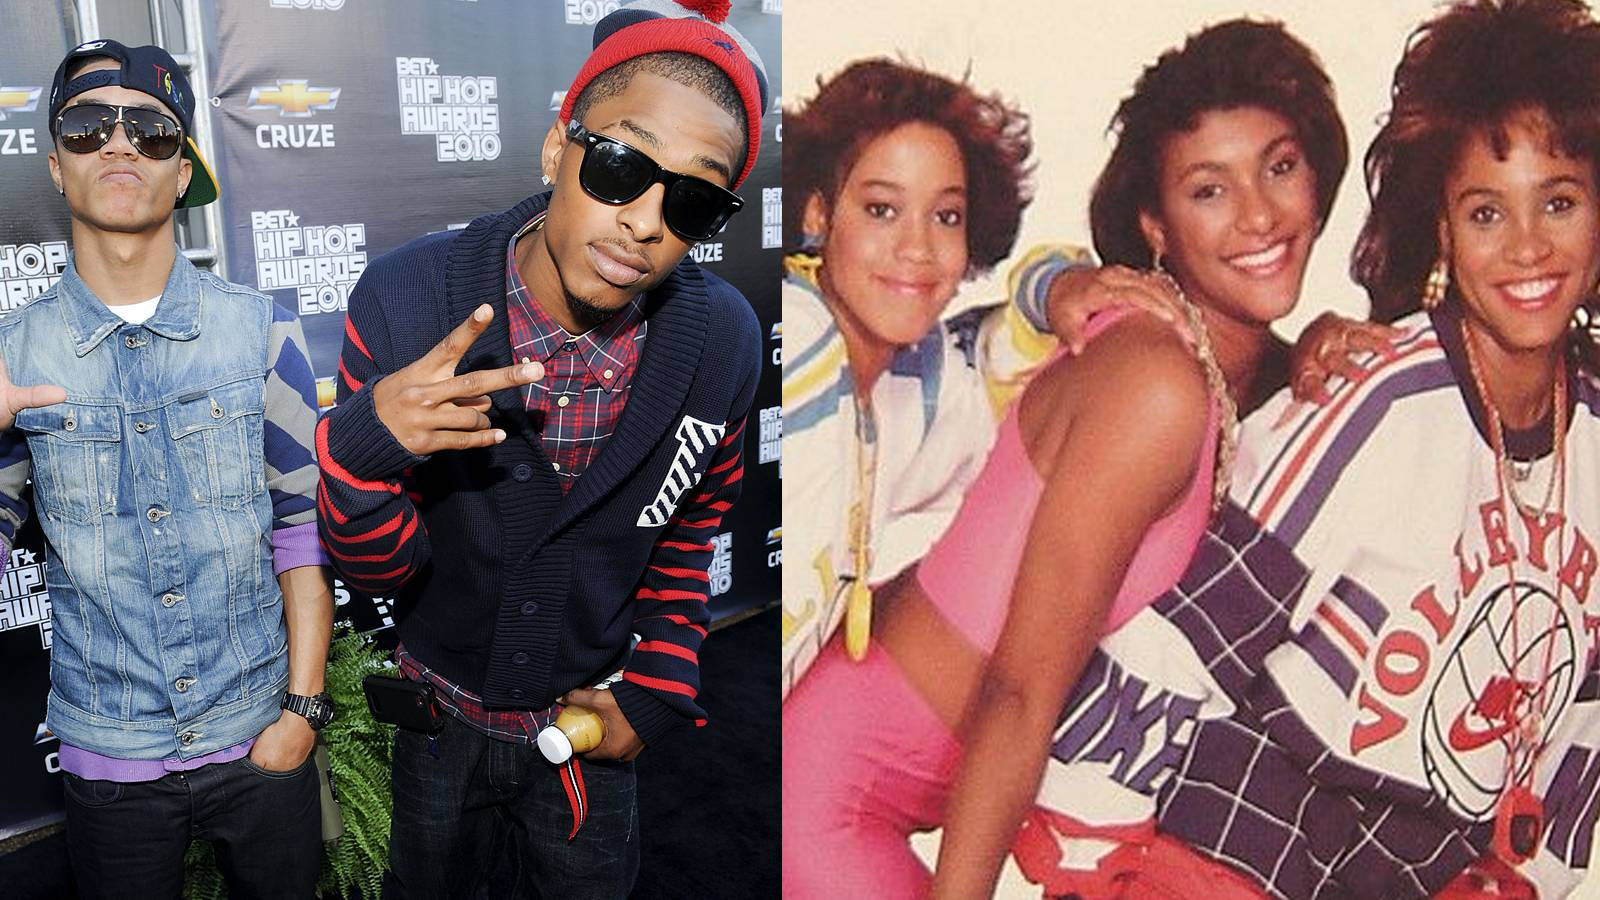 The New Boyz & J.J. Fad - The New Boyz and J.J. Fad have two things in common: they have two of the most memorable Cali dance tracks ever and their music video dance routines are classic!(Photos: Brad Barket/PictureGroup; Uncle Louie Music Group)